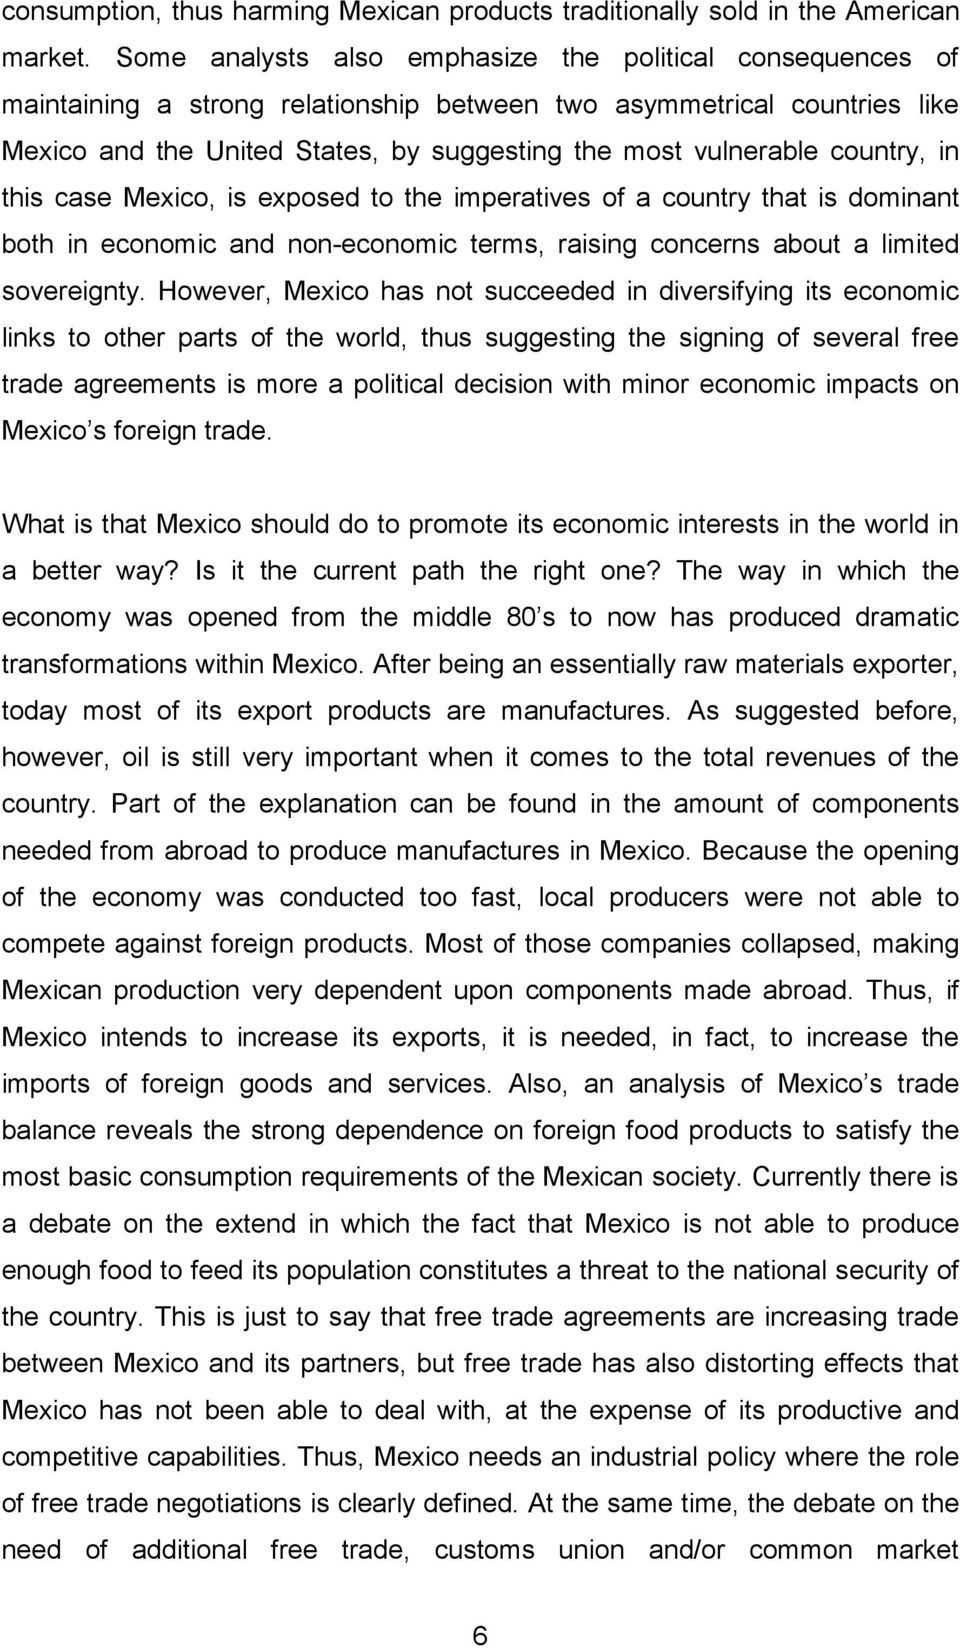 country, in this case Mexico, is exposed to the imperatives of a country that is dominant both in economic and non-economic terms, raising concerns about a limited sovereignty.